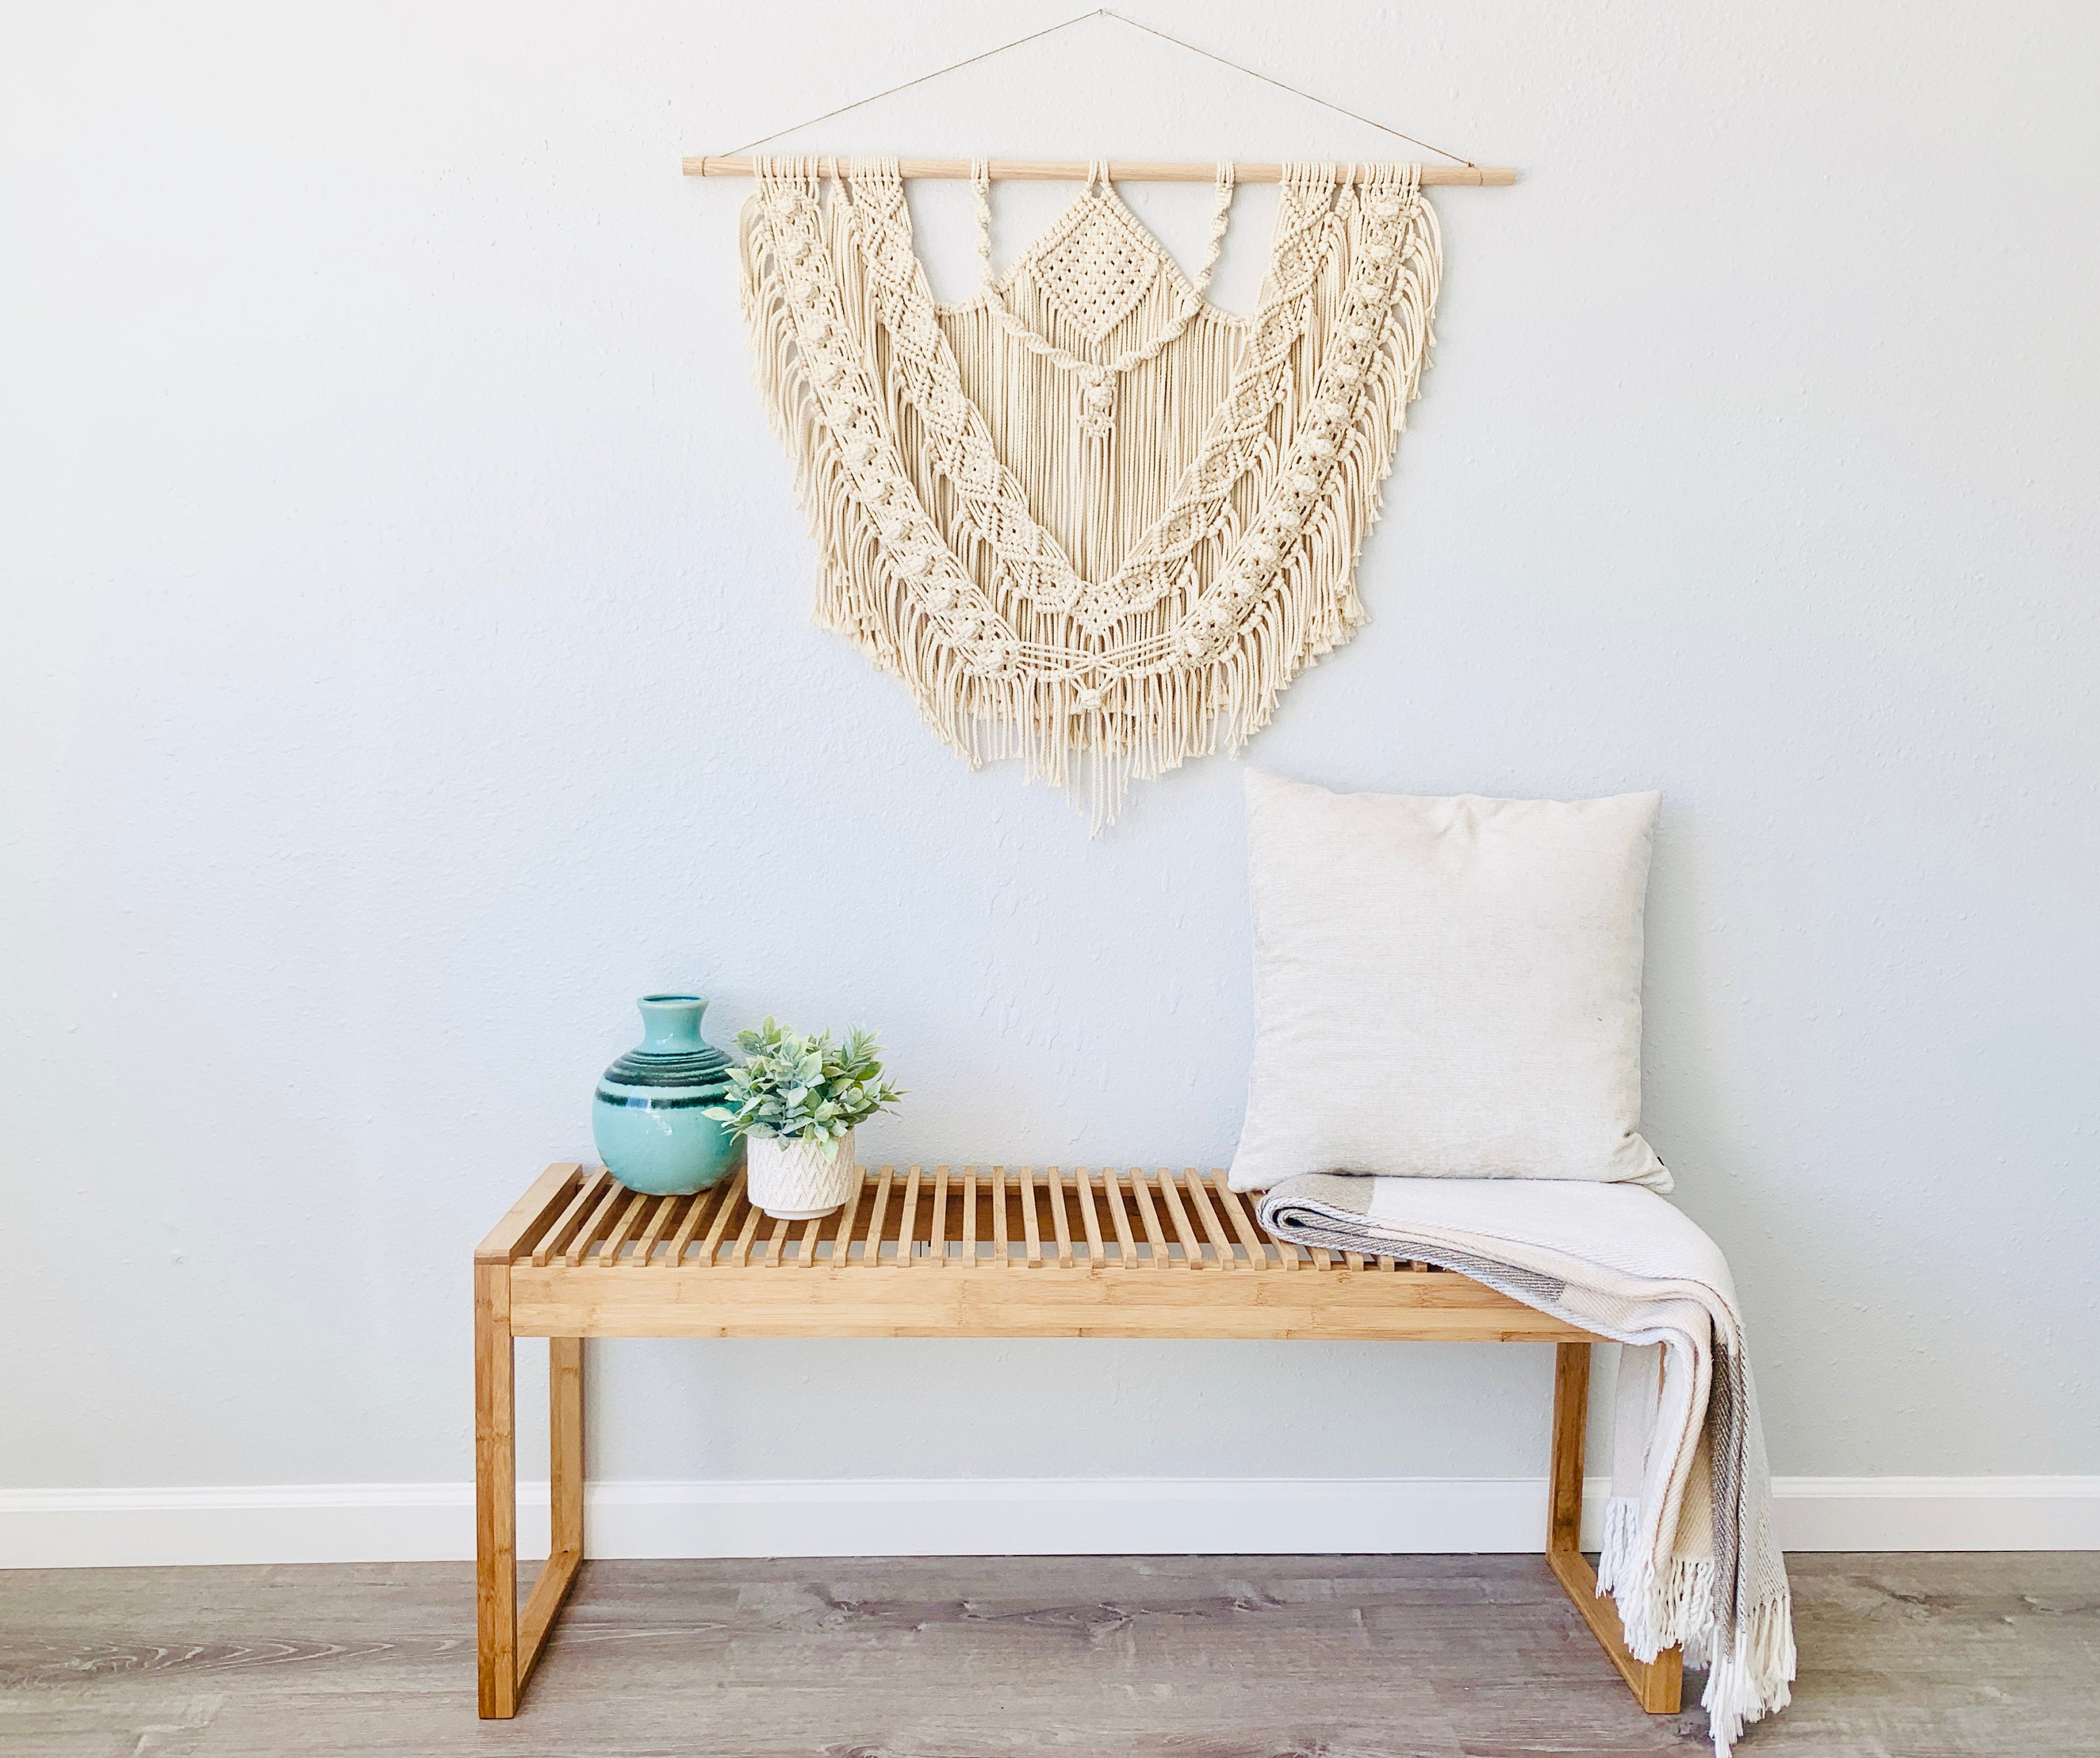 Large Layered Bohemian Macrame Wall Hanging, Diamond Macrame Wall Decor, Boho Decor, Fiber Art, Modern Macrame, Bohemian Decor